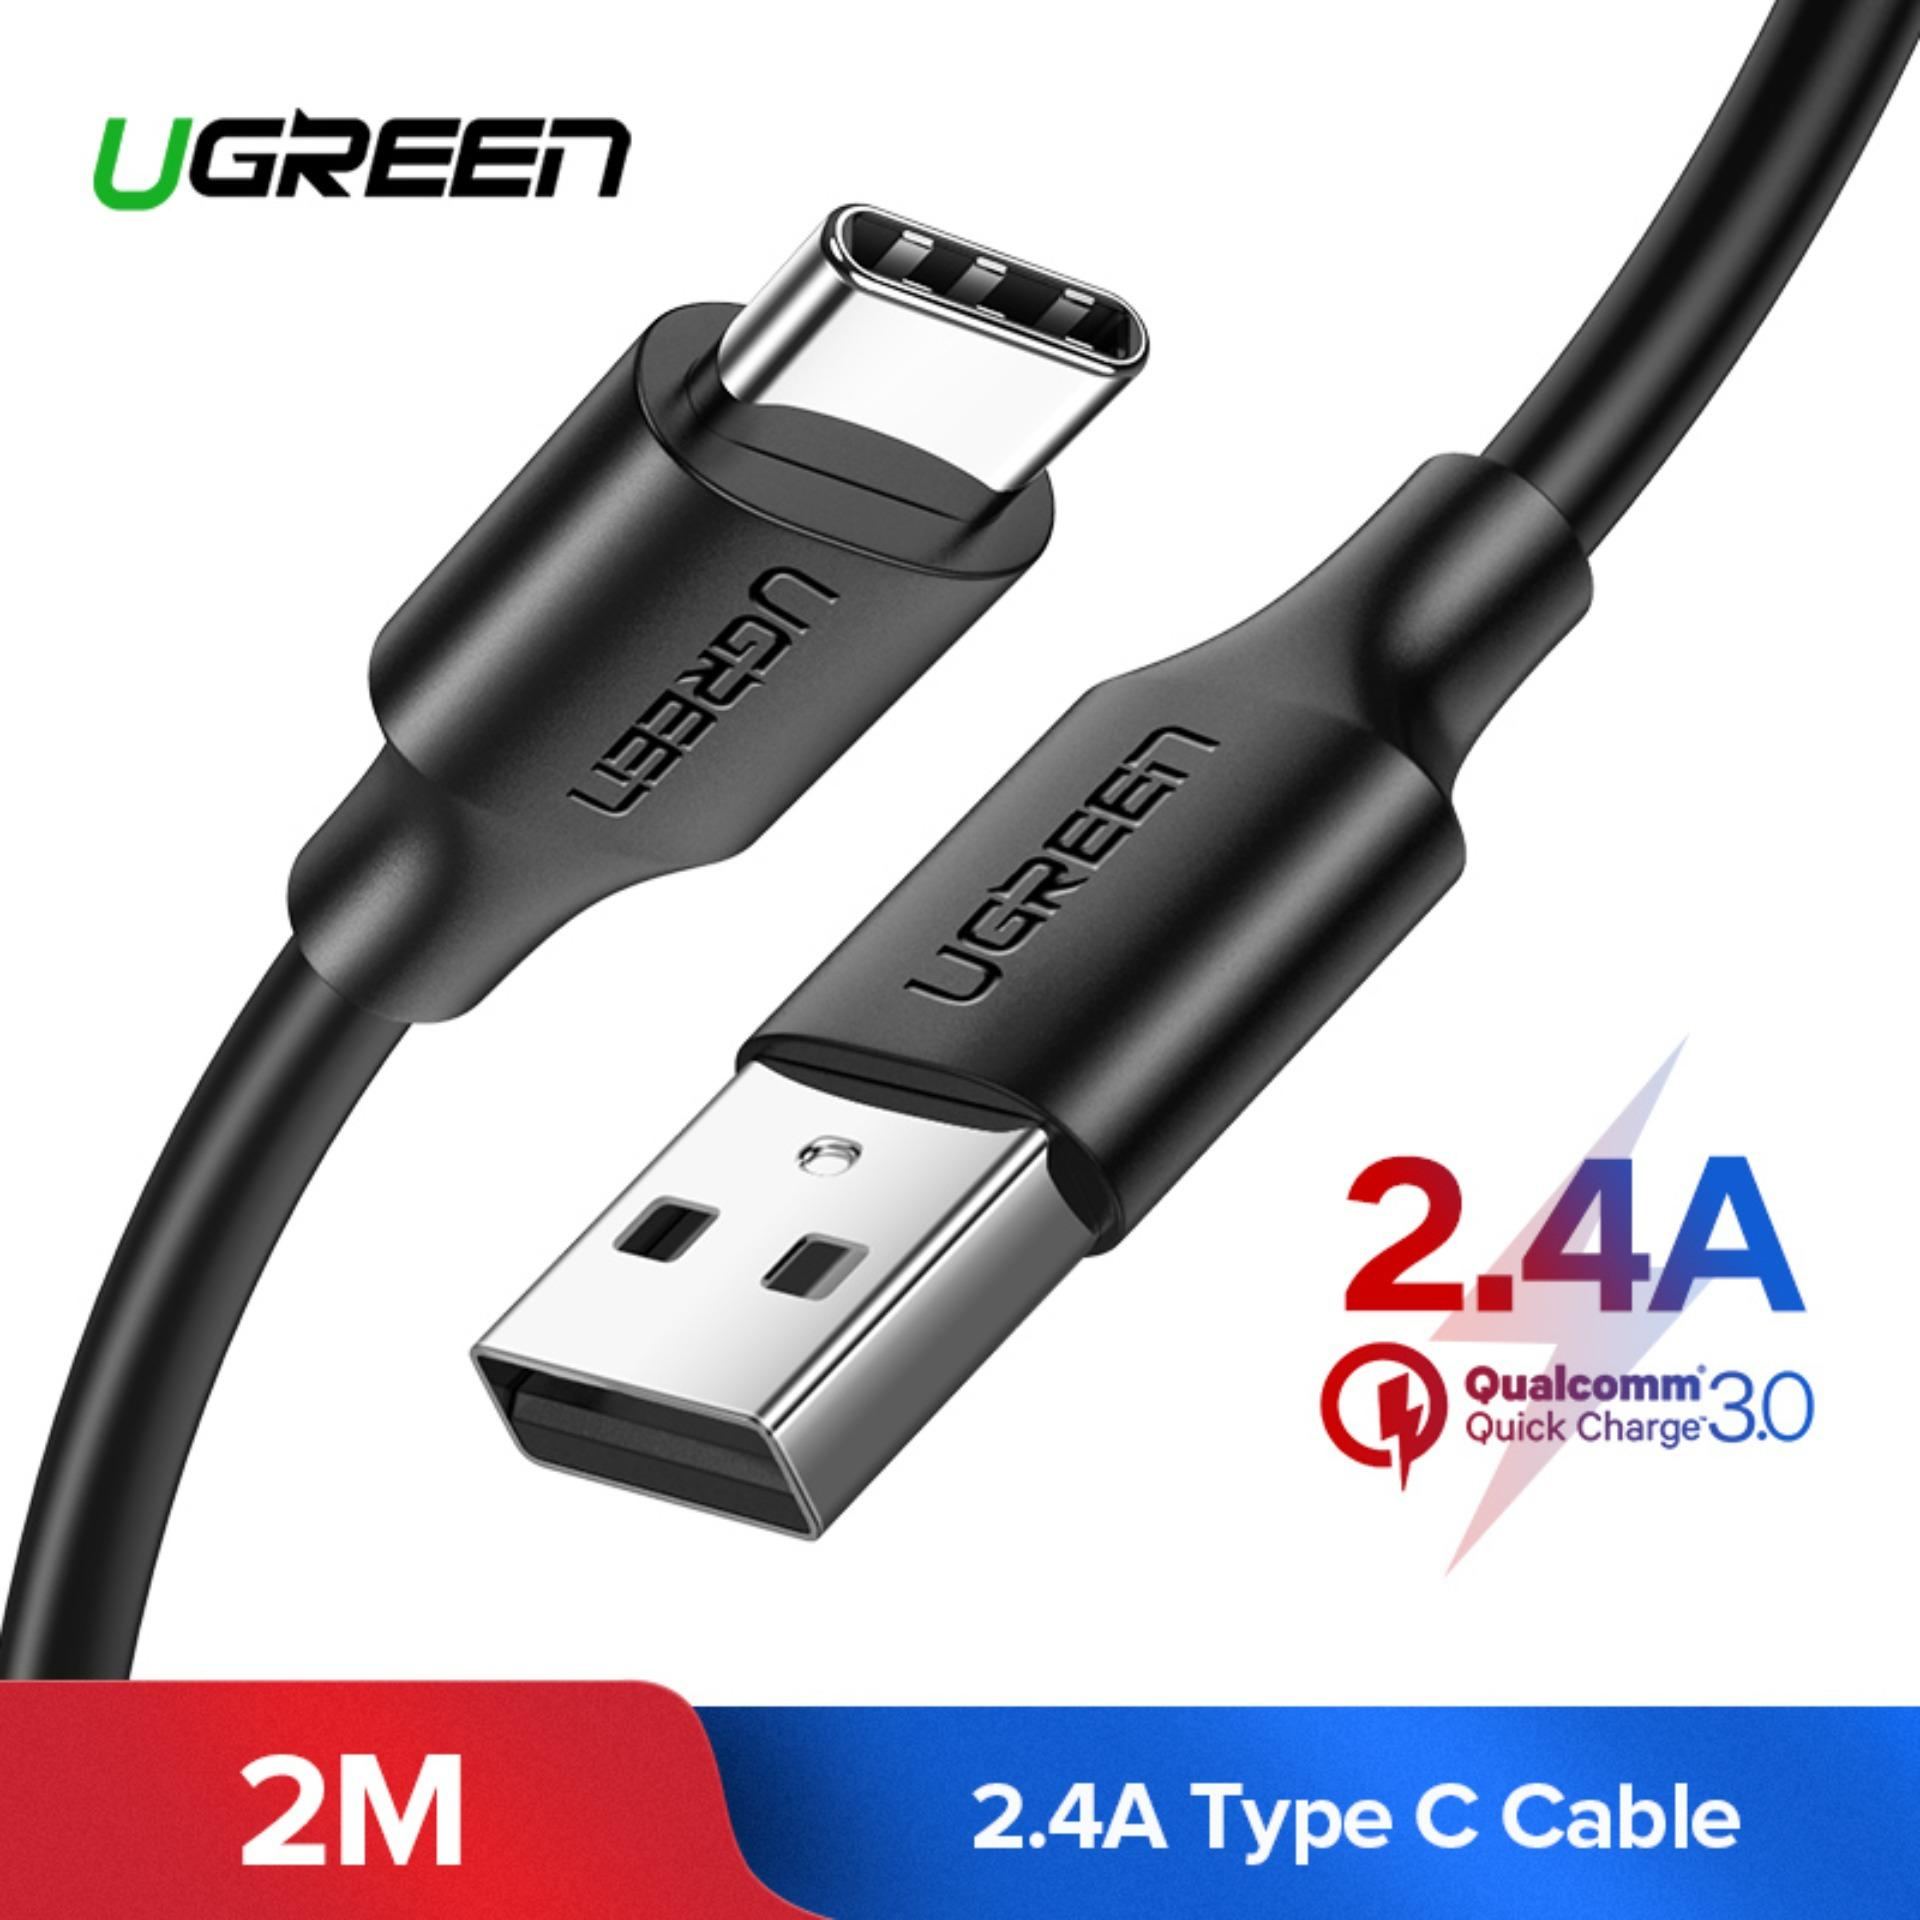 UGREEN Original Kabel Data TYPE C 2Meter USB Type C Charging Cable For Xiaomi pocophone F1, Huawei P20 Samsung S9 Note 8 Fast Charging Charger Cable For Huawei Xiaomi Mi 5 Handphone USB Type-C Cable Samsung s8+ s9+ note8 mate9 pro mate10 pro p10 plus